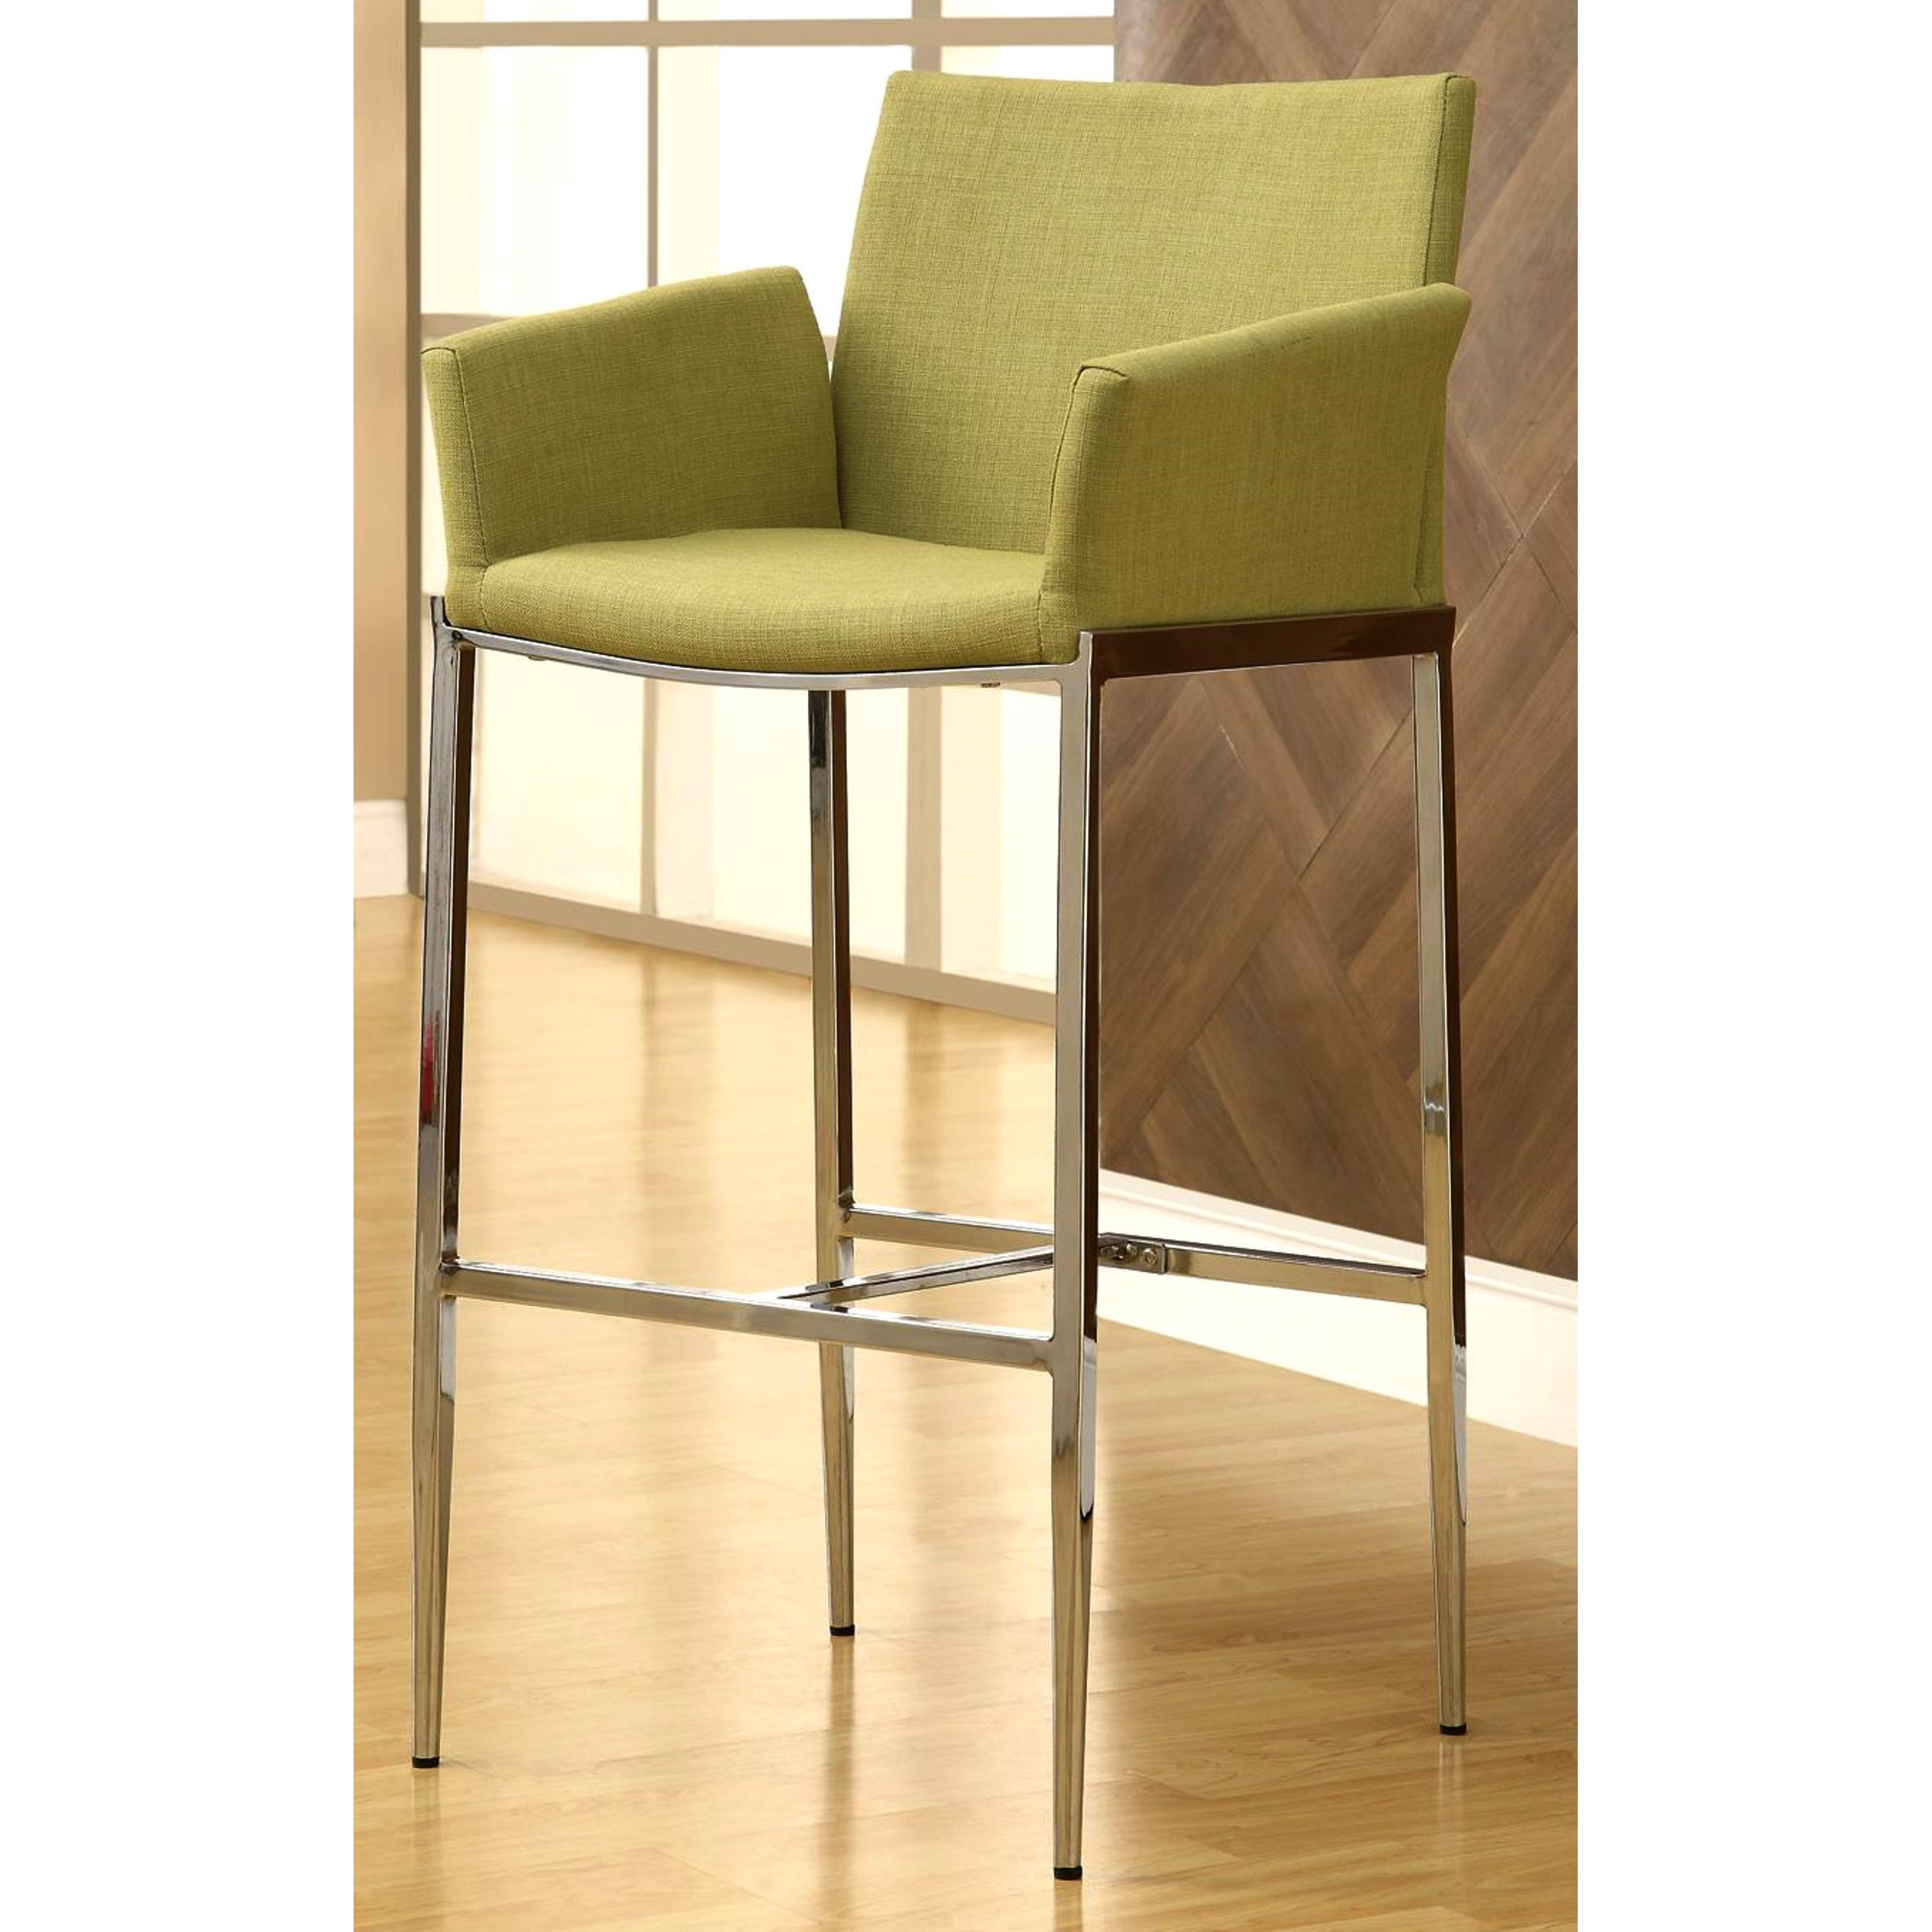 Shop Mcguire Upholstered Bar Stools With Chrome Legs (Set Of 2)   Free  Shipping Today   Overstock.com   10042587